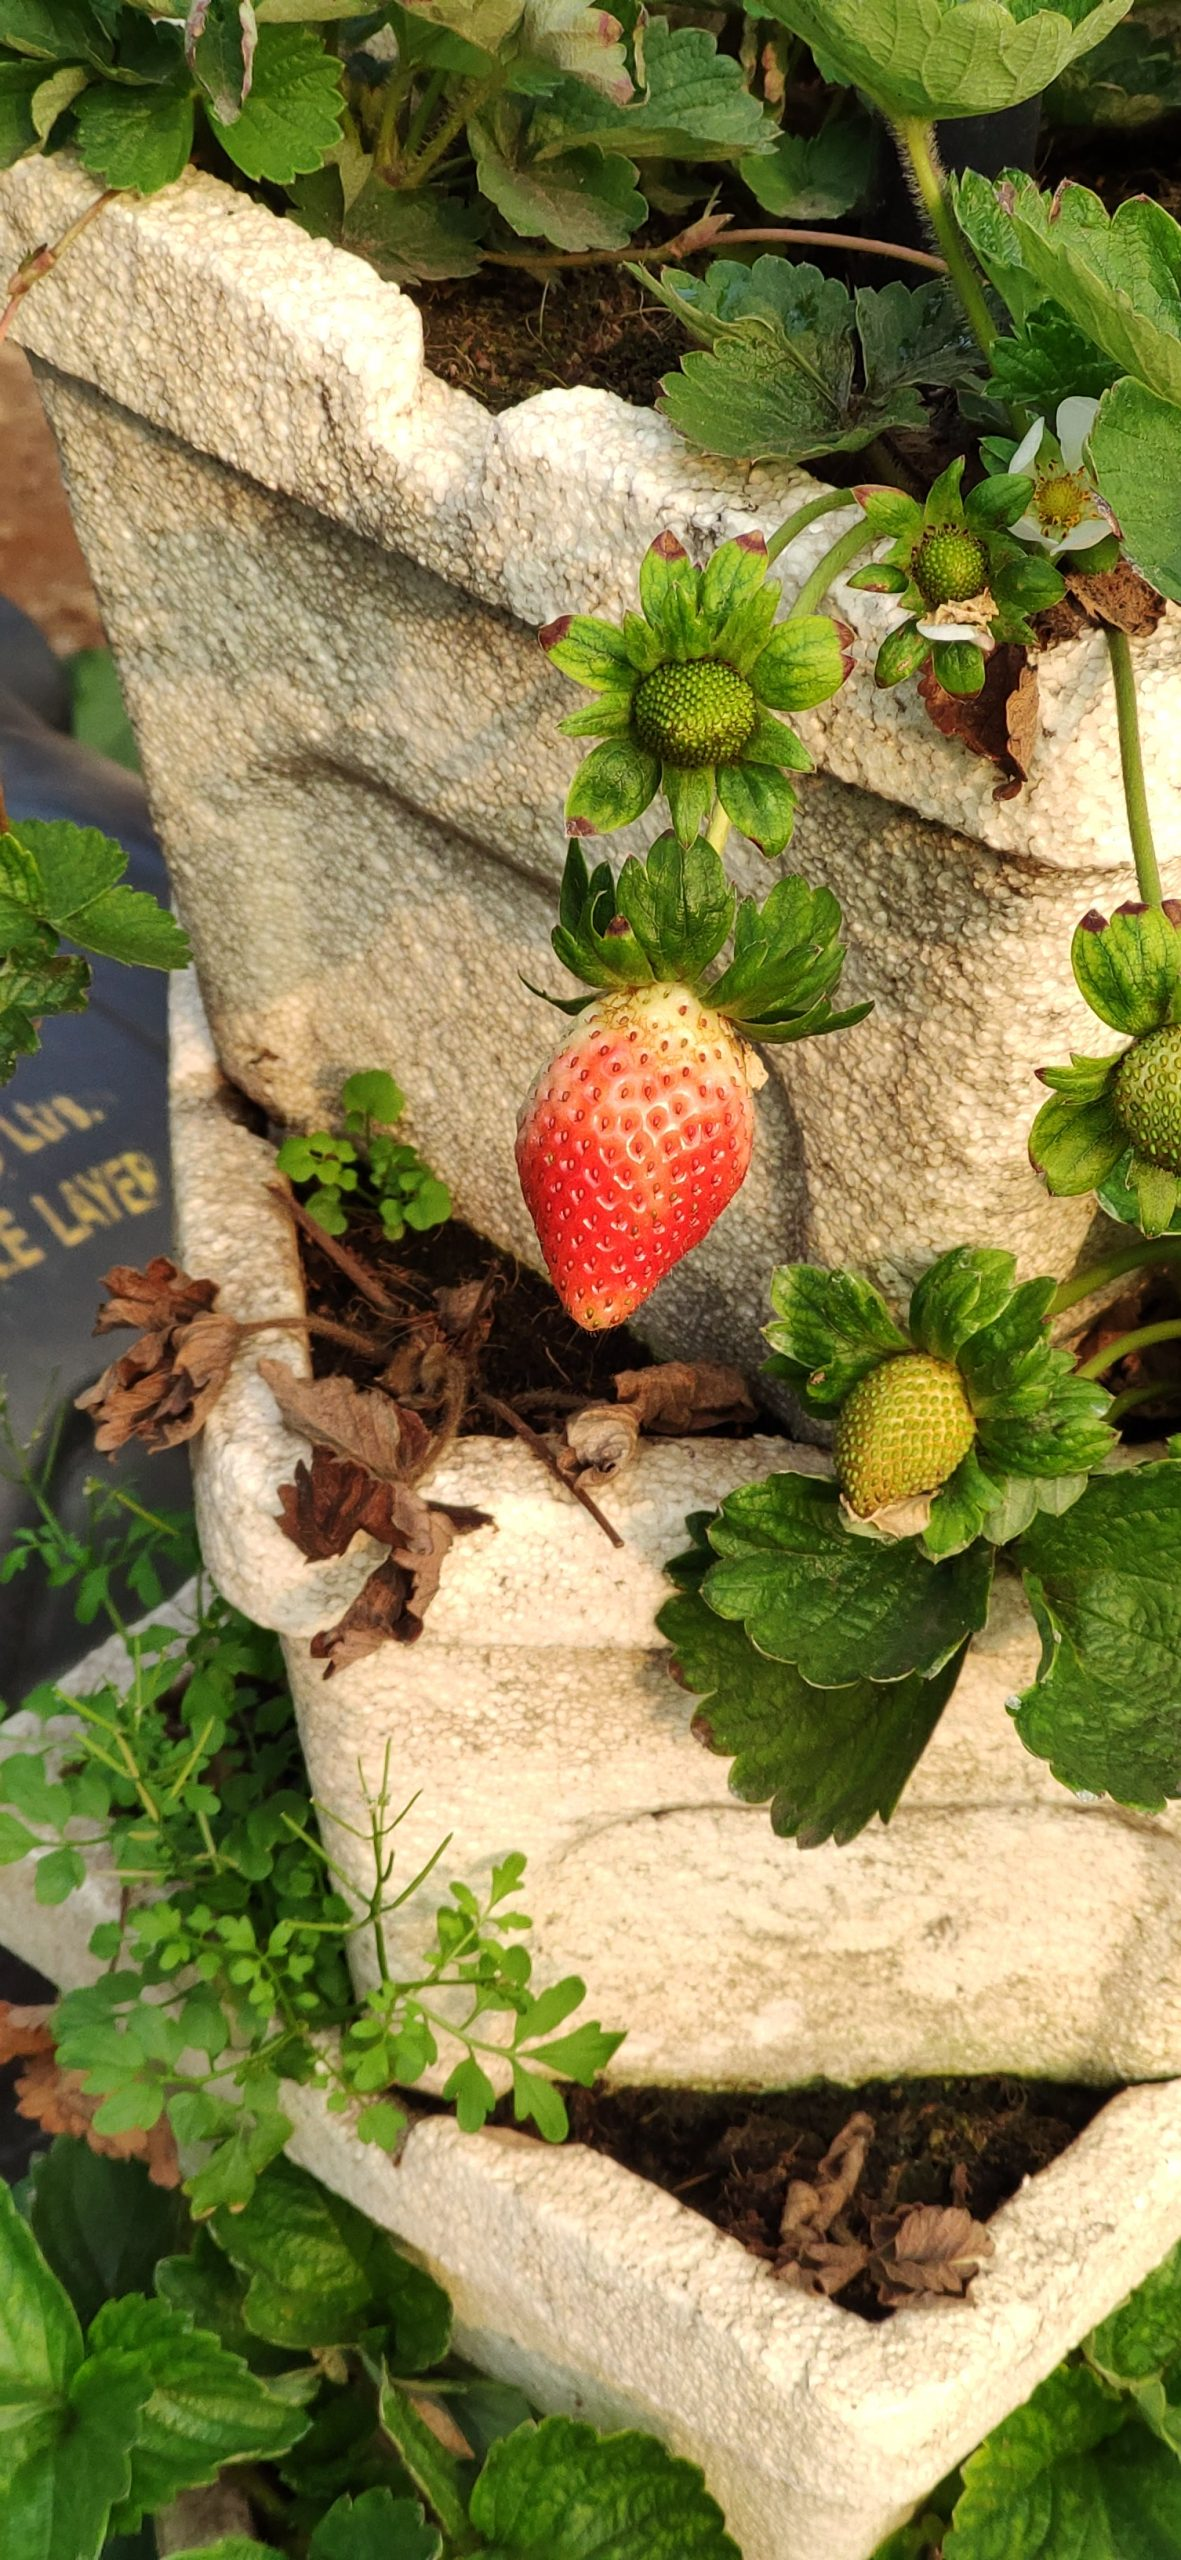 Strawberries on its plant